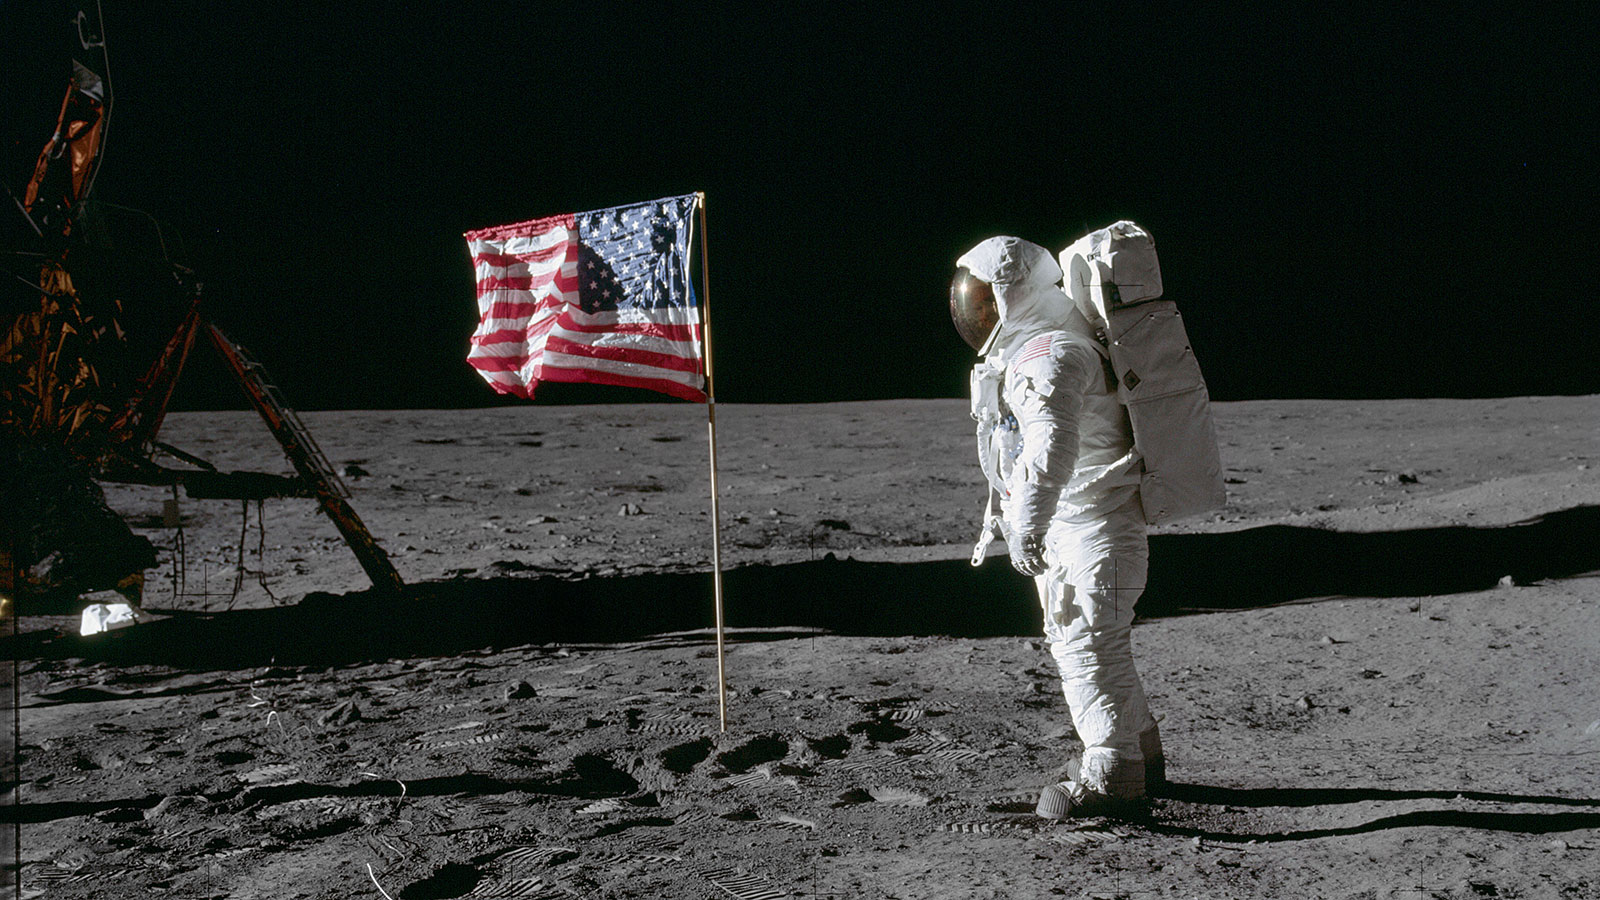 A meteor expert shares career lessons inspired by the moon landing